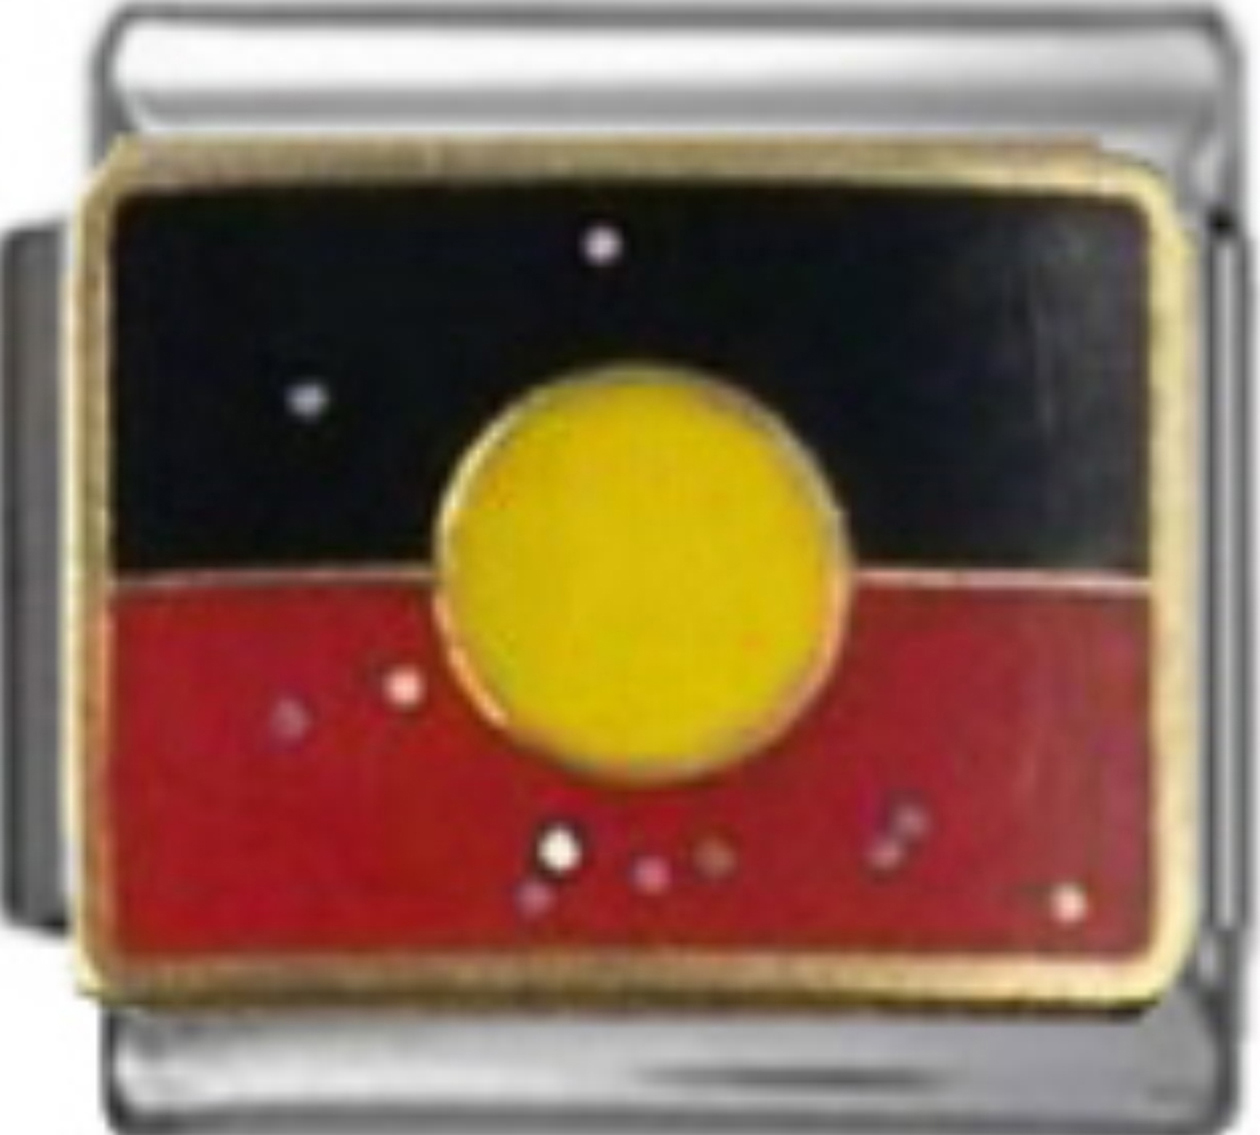 PC243-Aboriginal-Flag